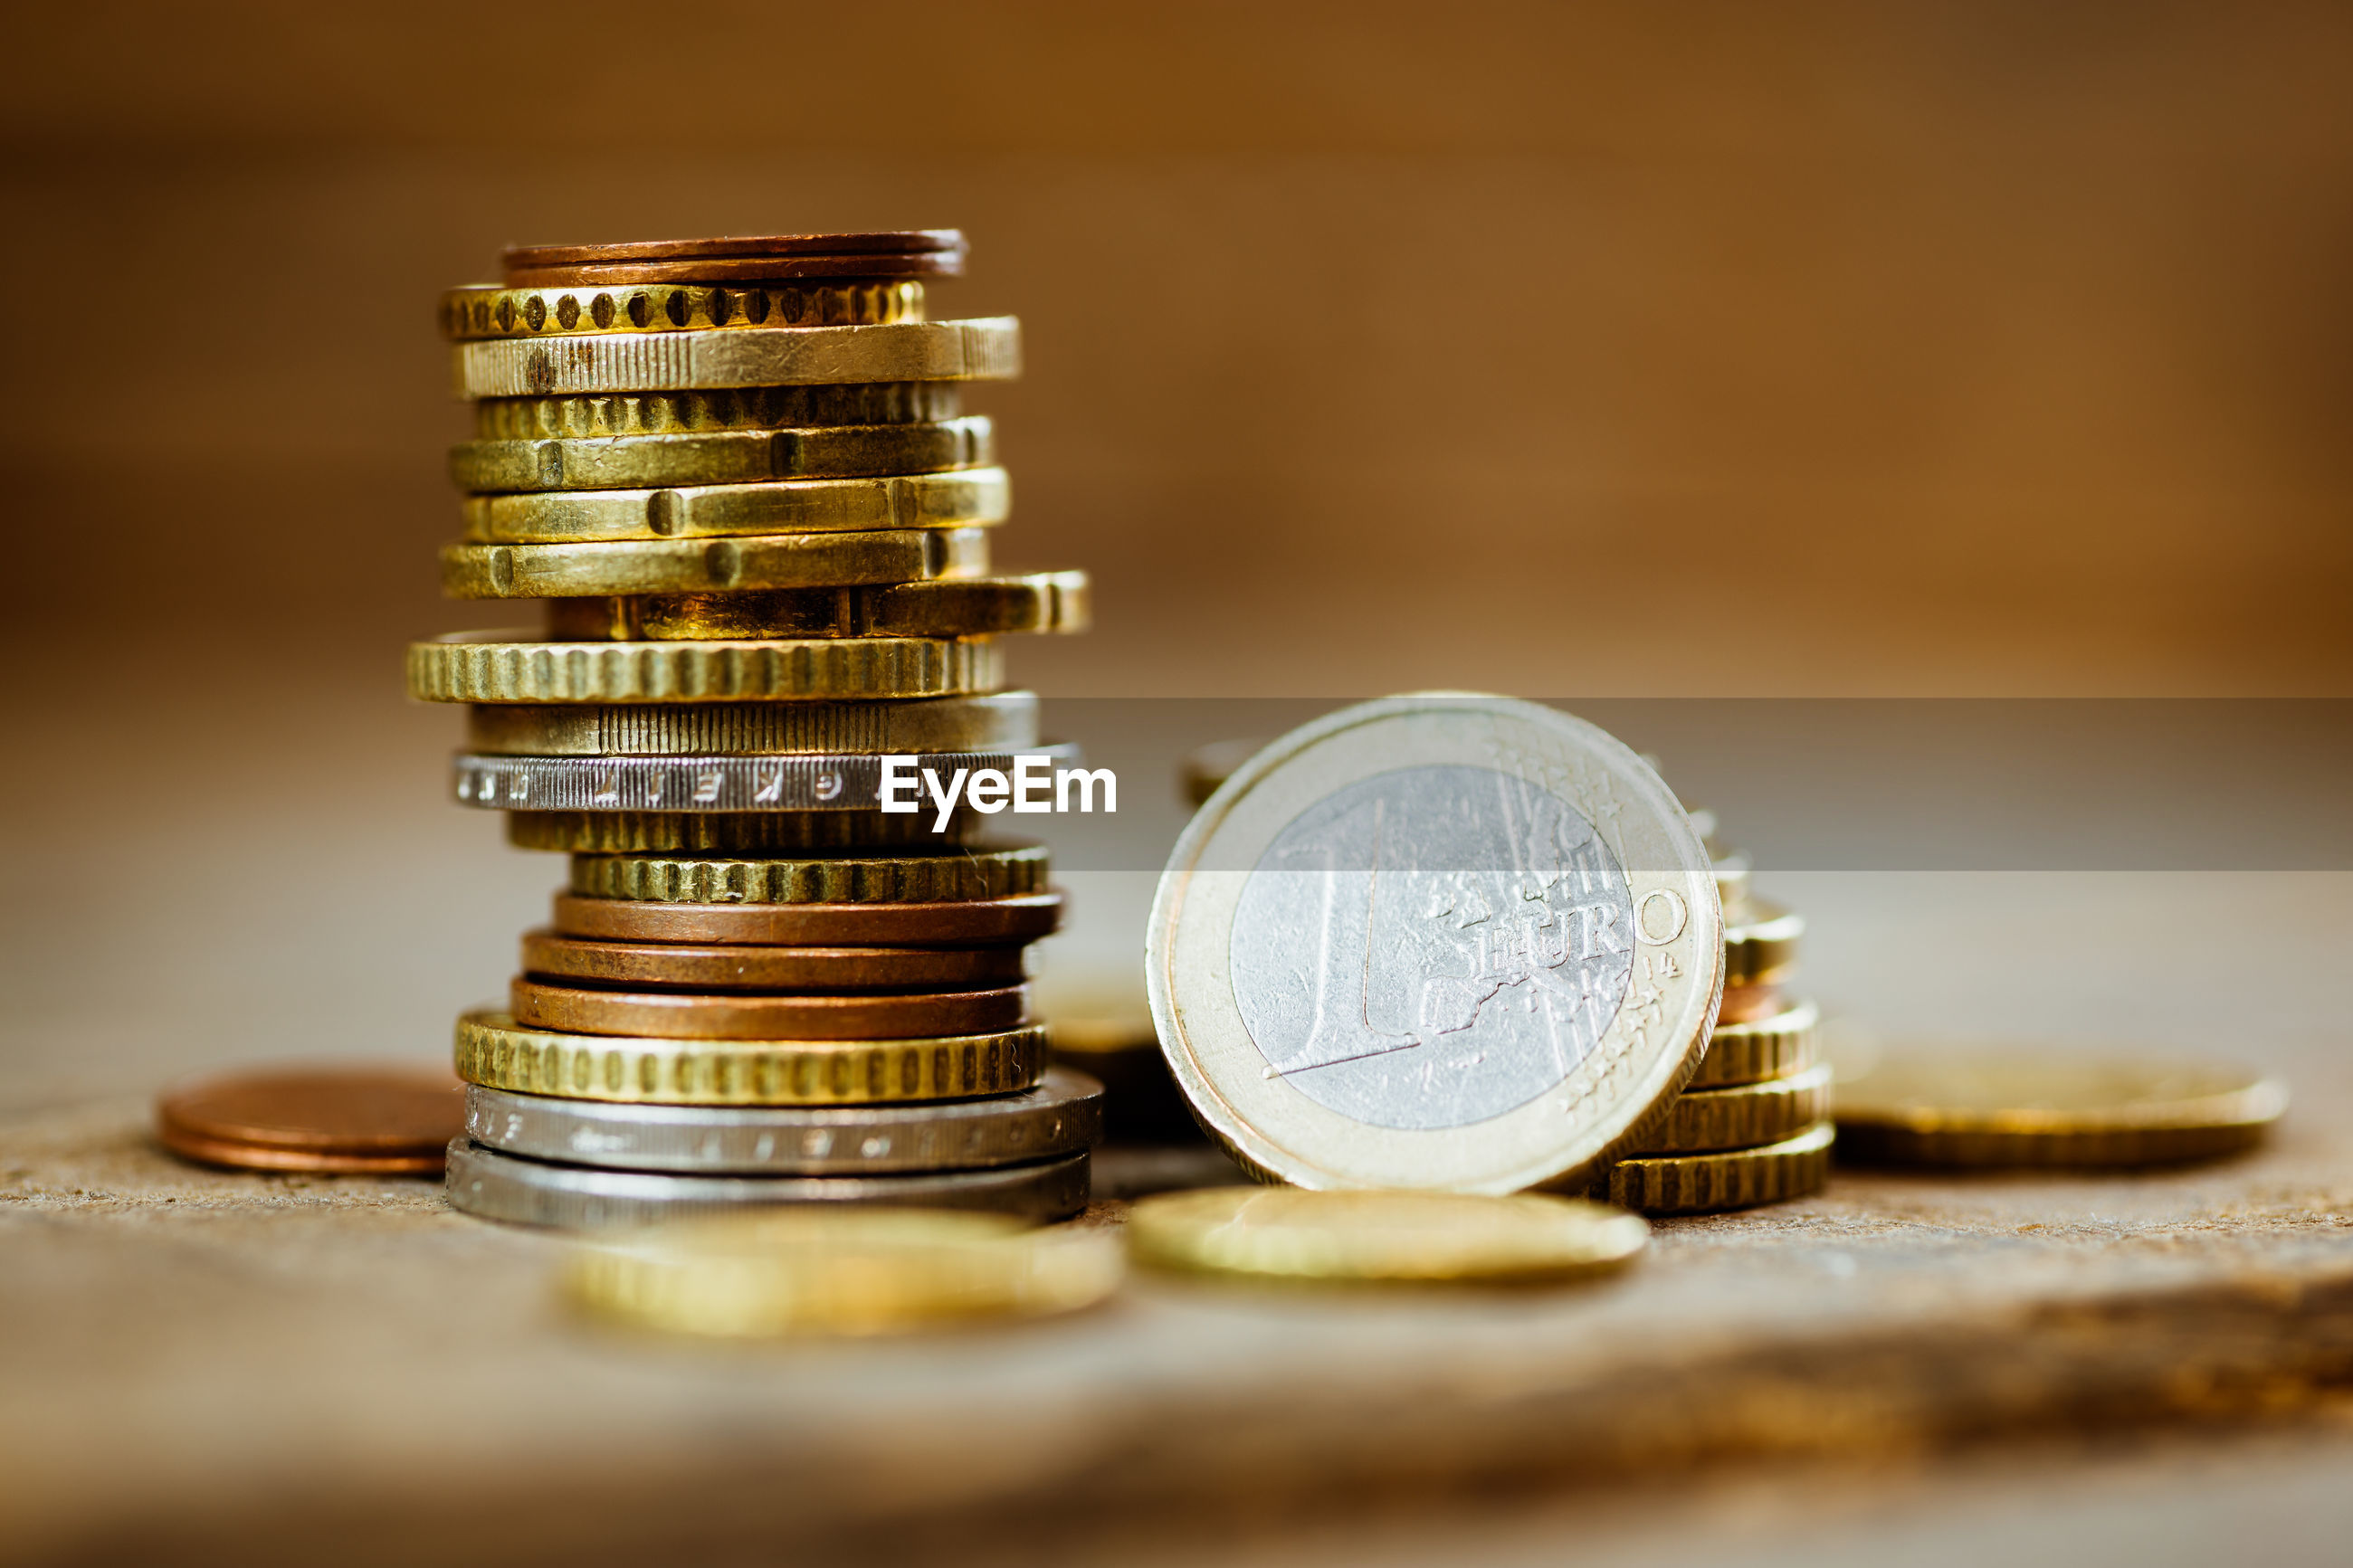 STACK OF COINS IN CONTAINER